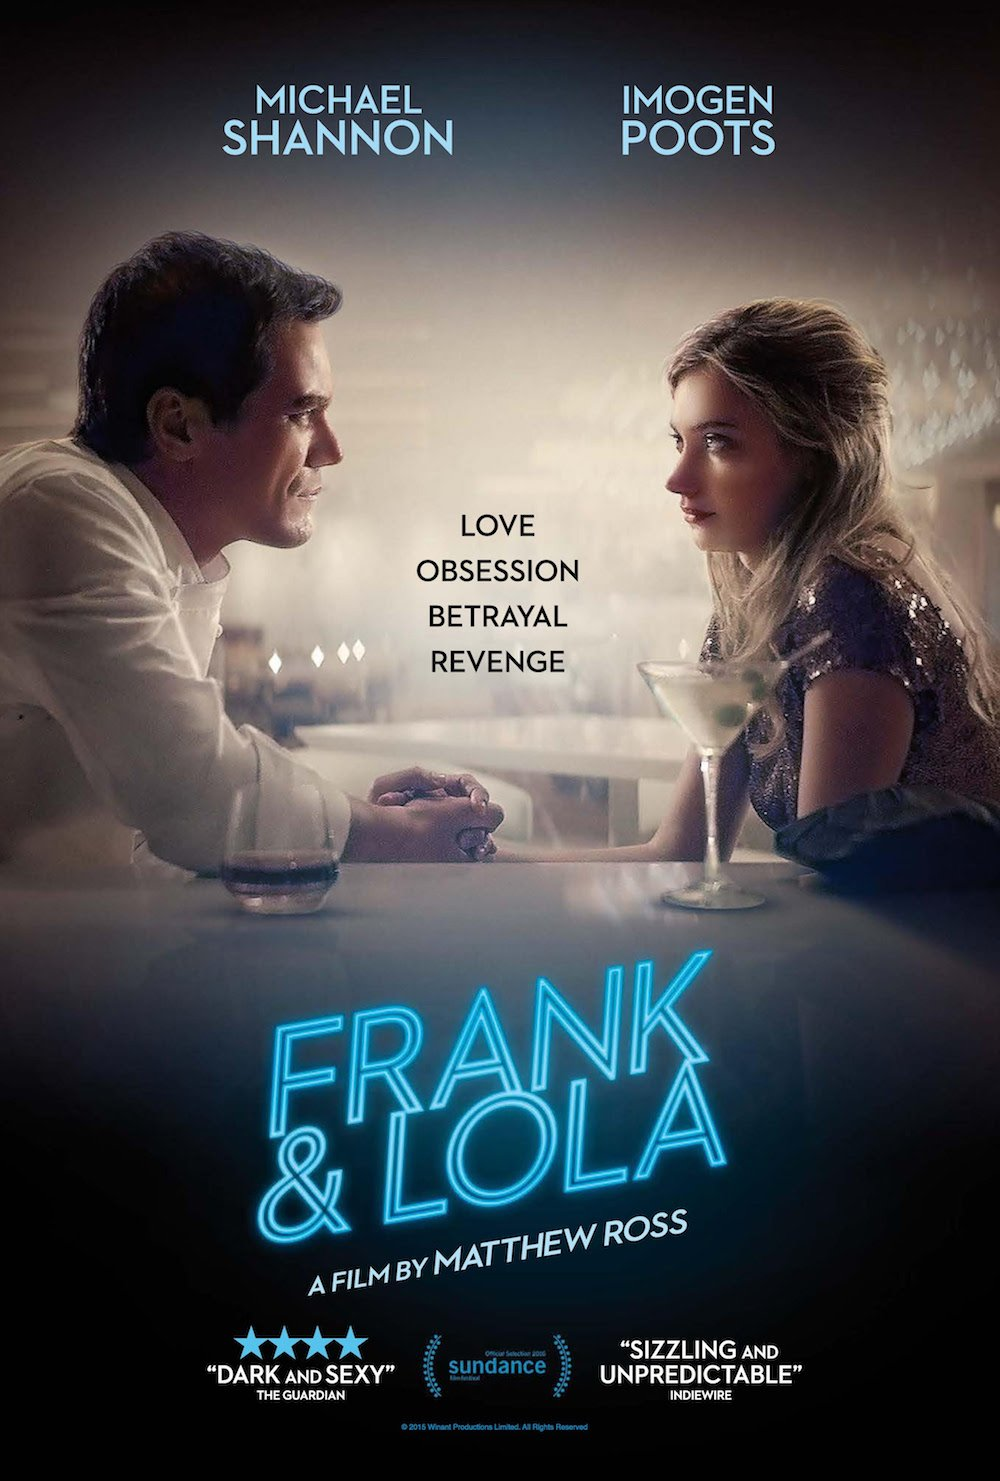 Love, Obsession And Revenge Combine In Tense First Trailer For Frank & Lola